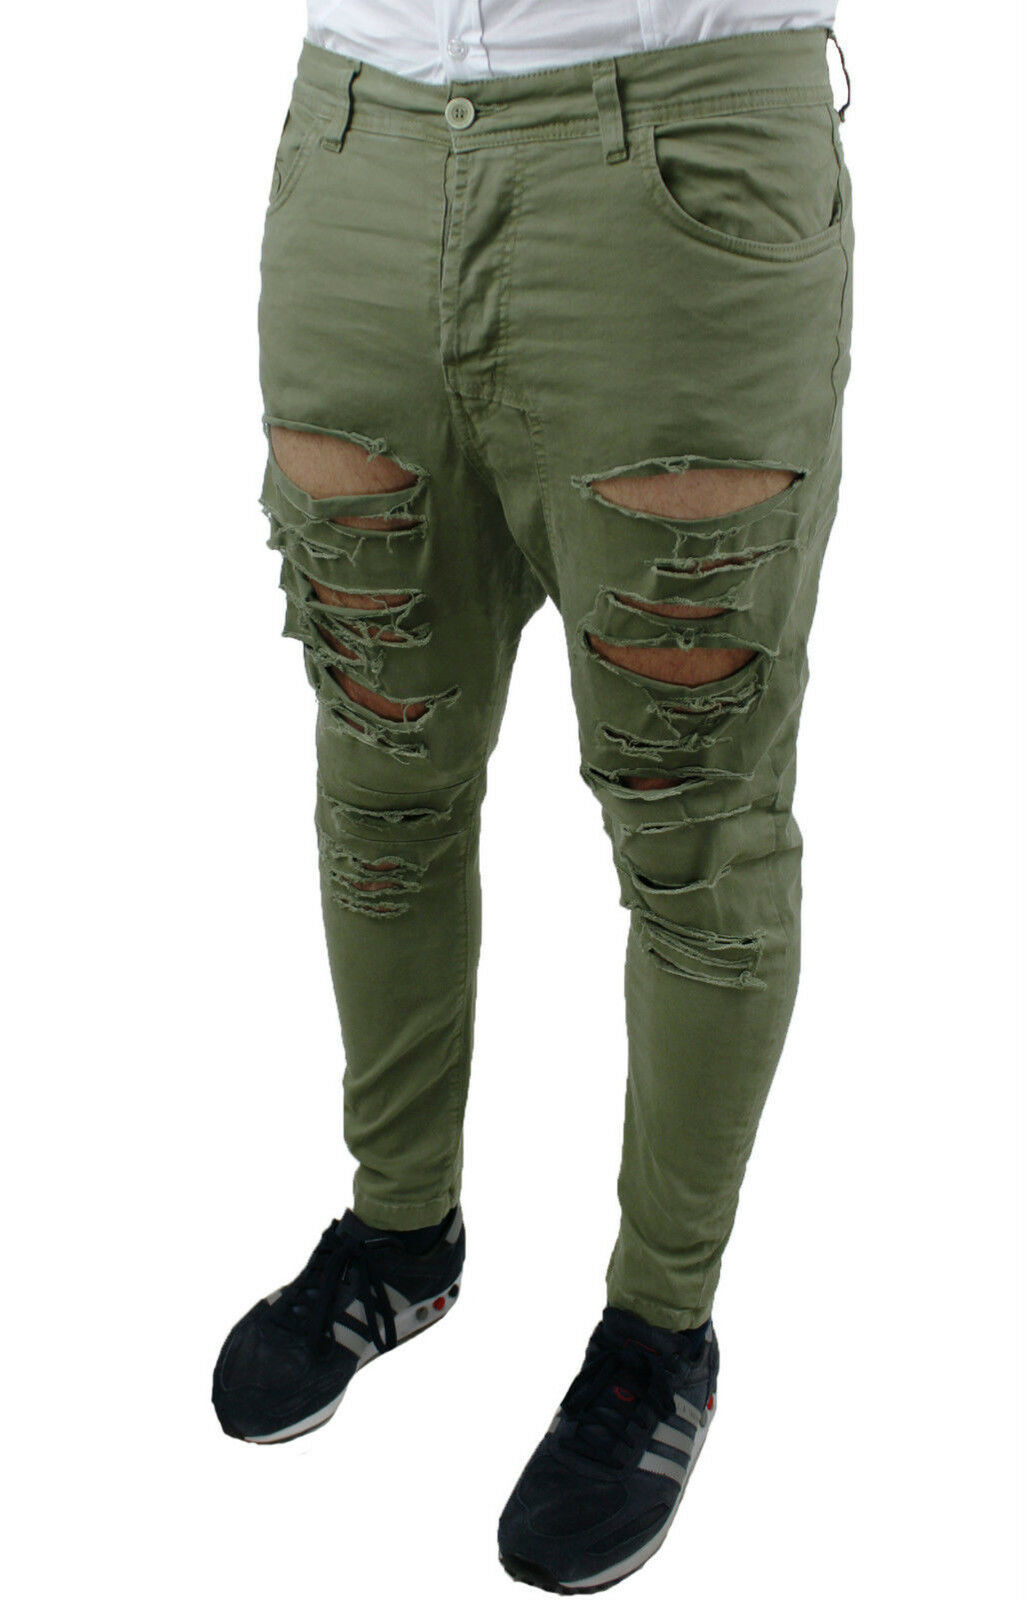 MEN'S JEANS TROUSERS SLIM FIT MILITARY GREEN COTTON RIPPED 42 44 46 48 50 52